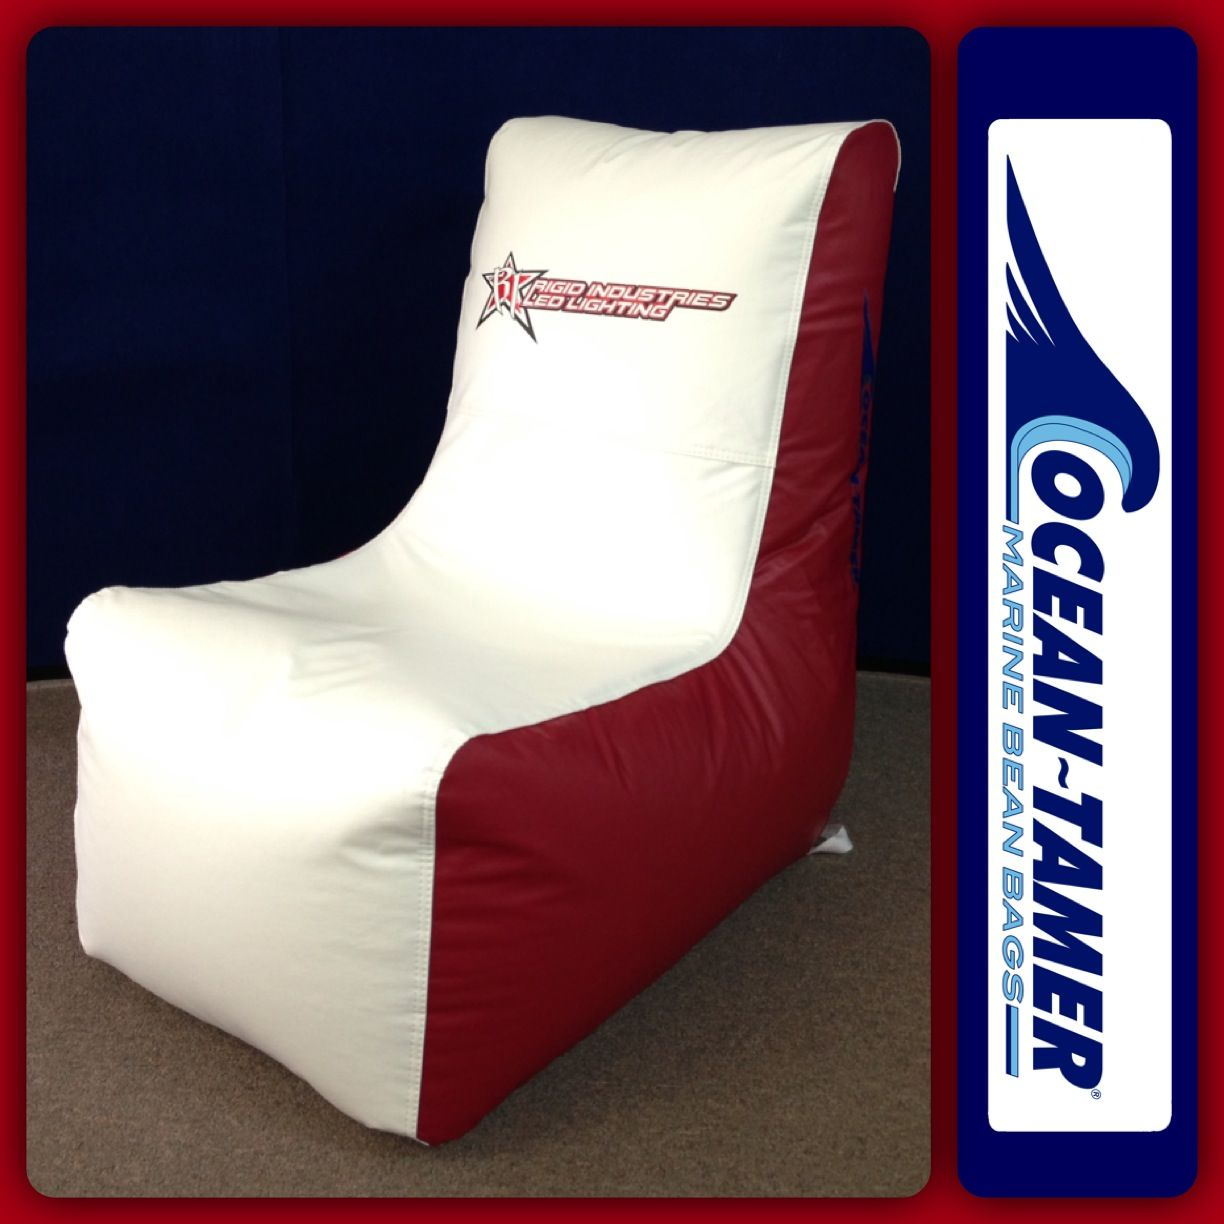 Ocean Tamer Wedge Marine Bean Bag With Rigid Industries Logo On The Center Backrest And